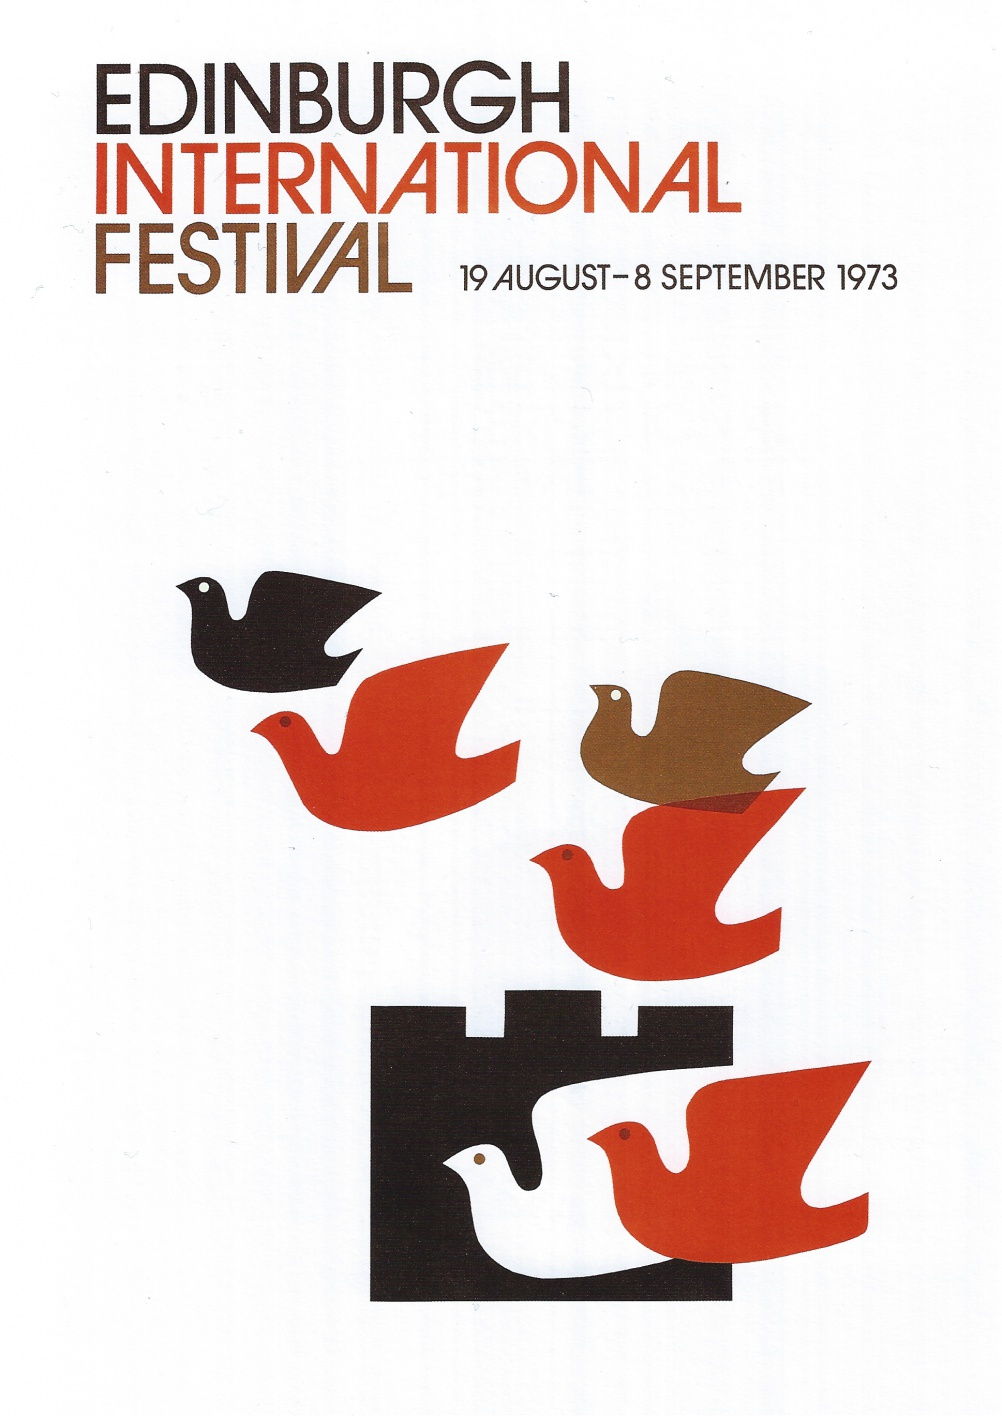 Edinburgh International Festival publicity material (1976-78) Designed by Hans and Pat Schleger (Hans Schleger Associates)